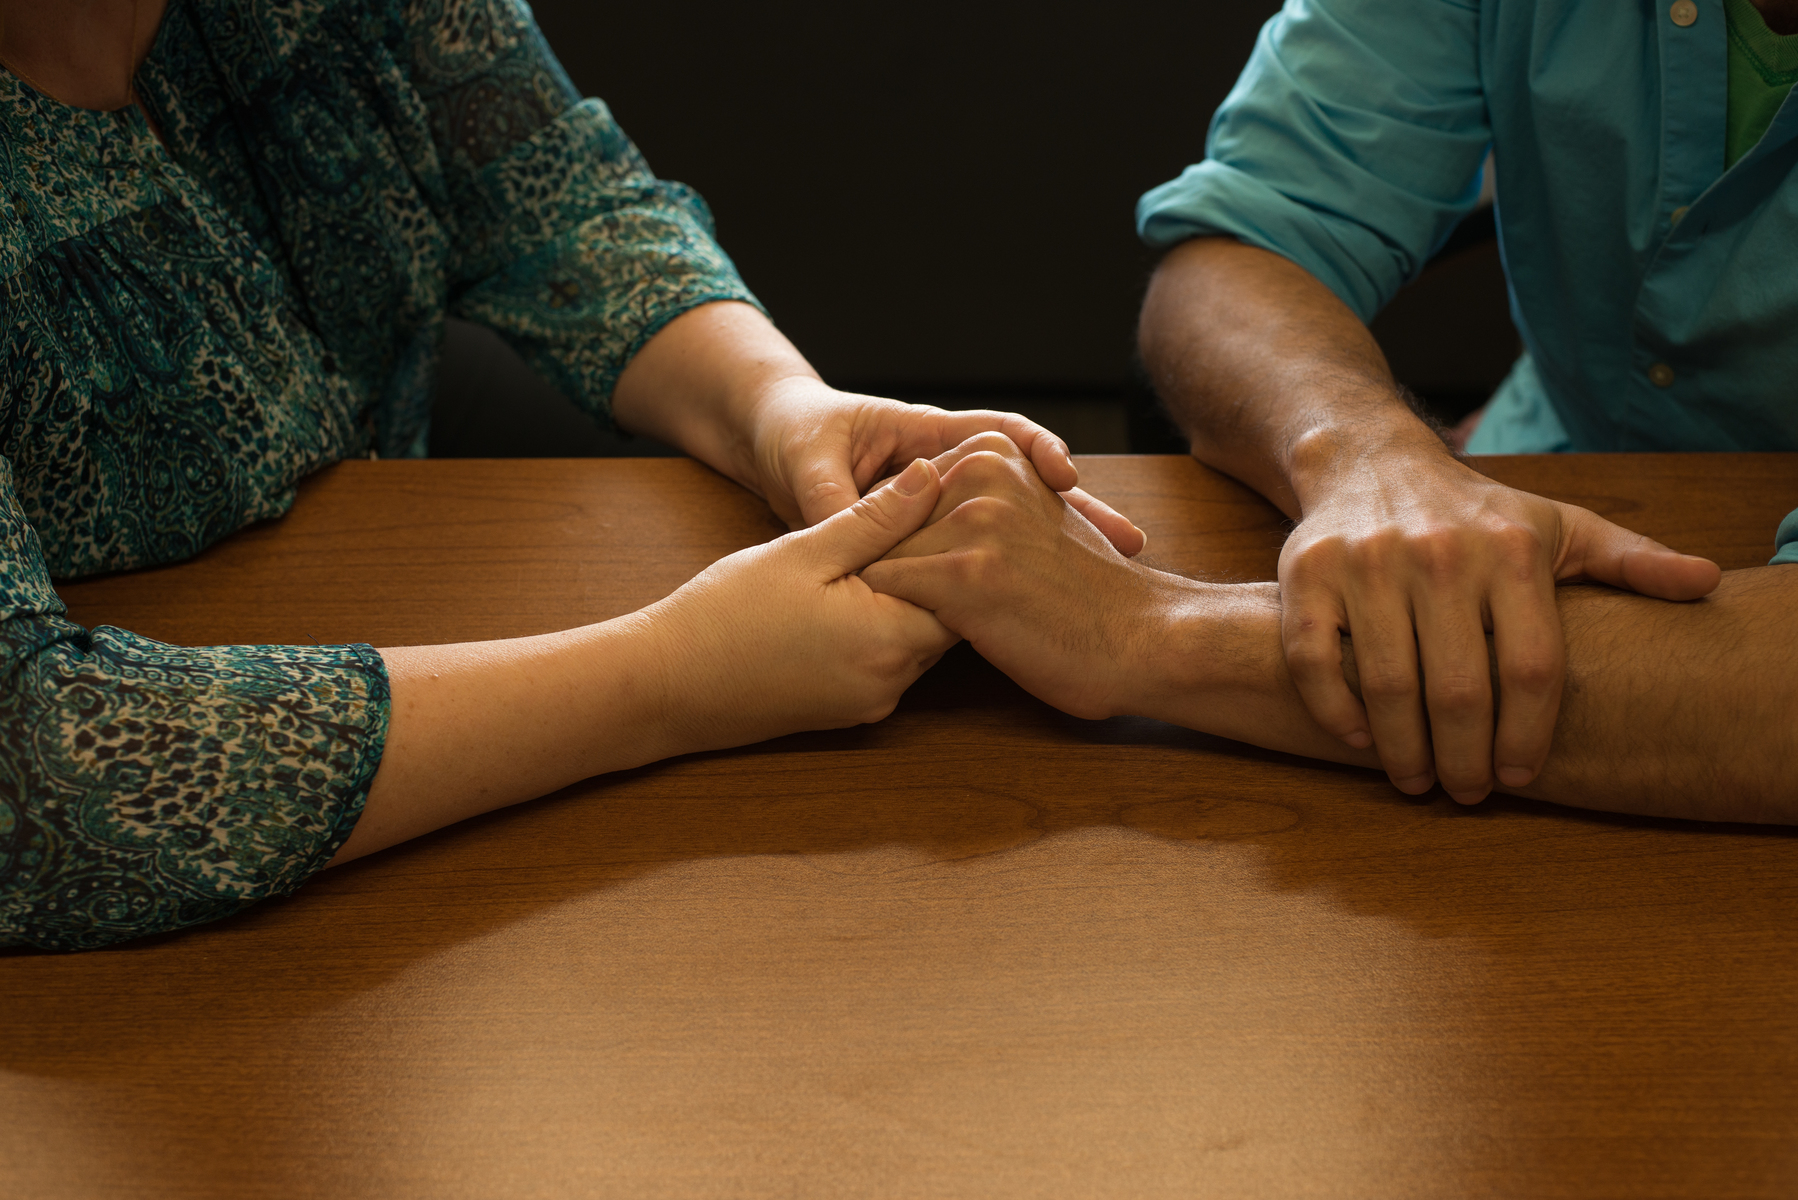 Holding hands at counseling session